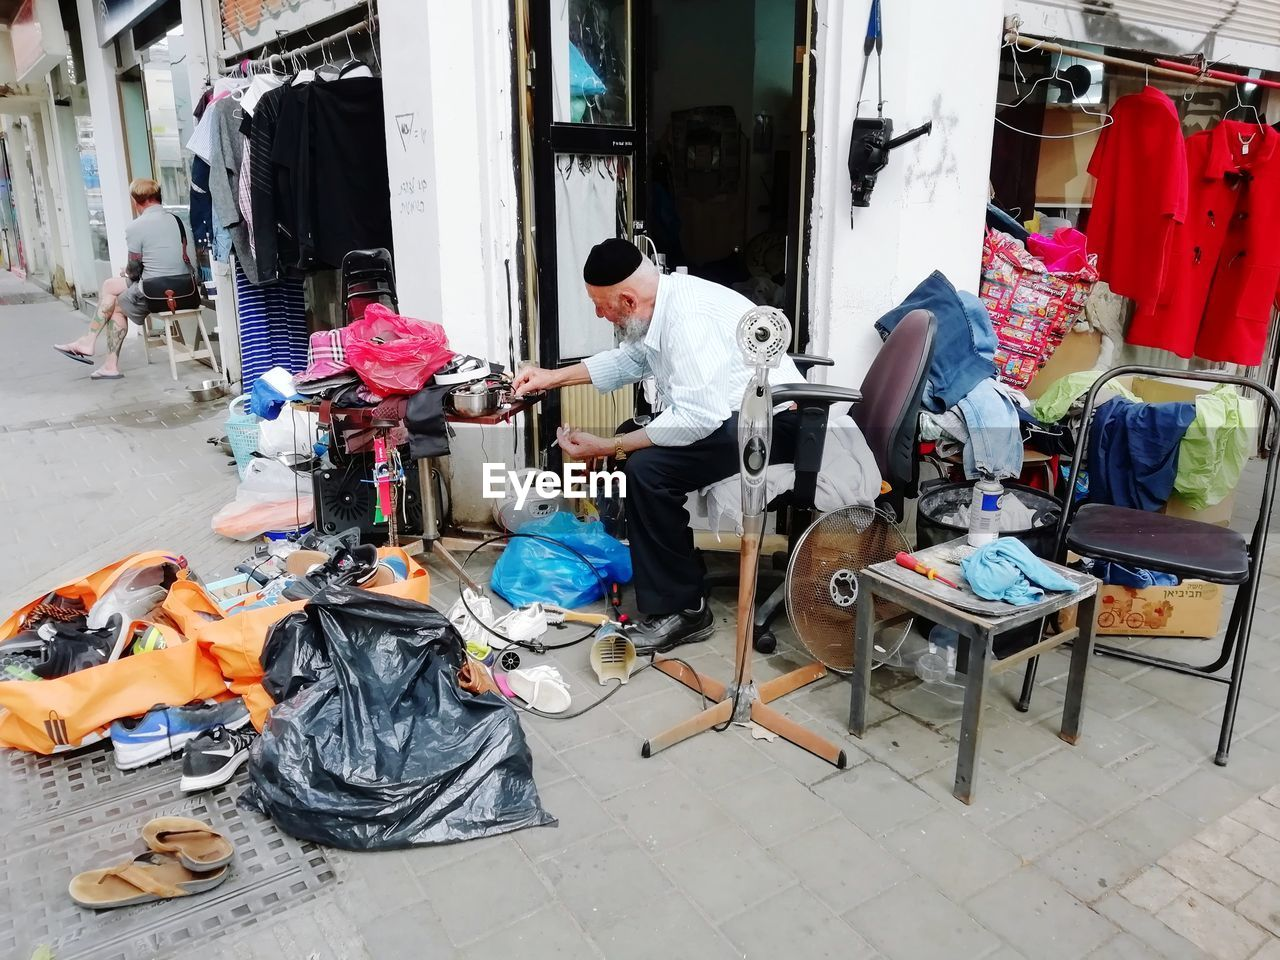 real people, occupation, working, men, one person, full length, architecture, day, adult, sitting, lifestyles, business, large group of objects, built structure, casual clothing, incidental people, equipment, messy, workshop